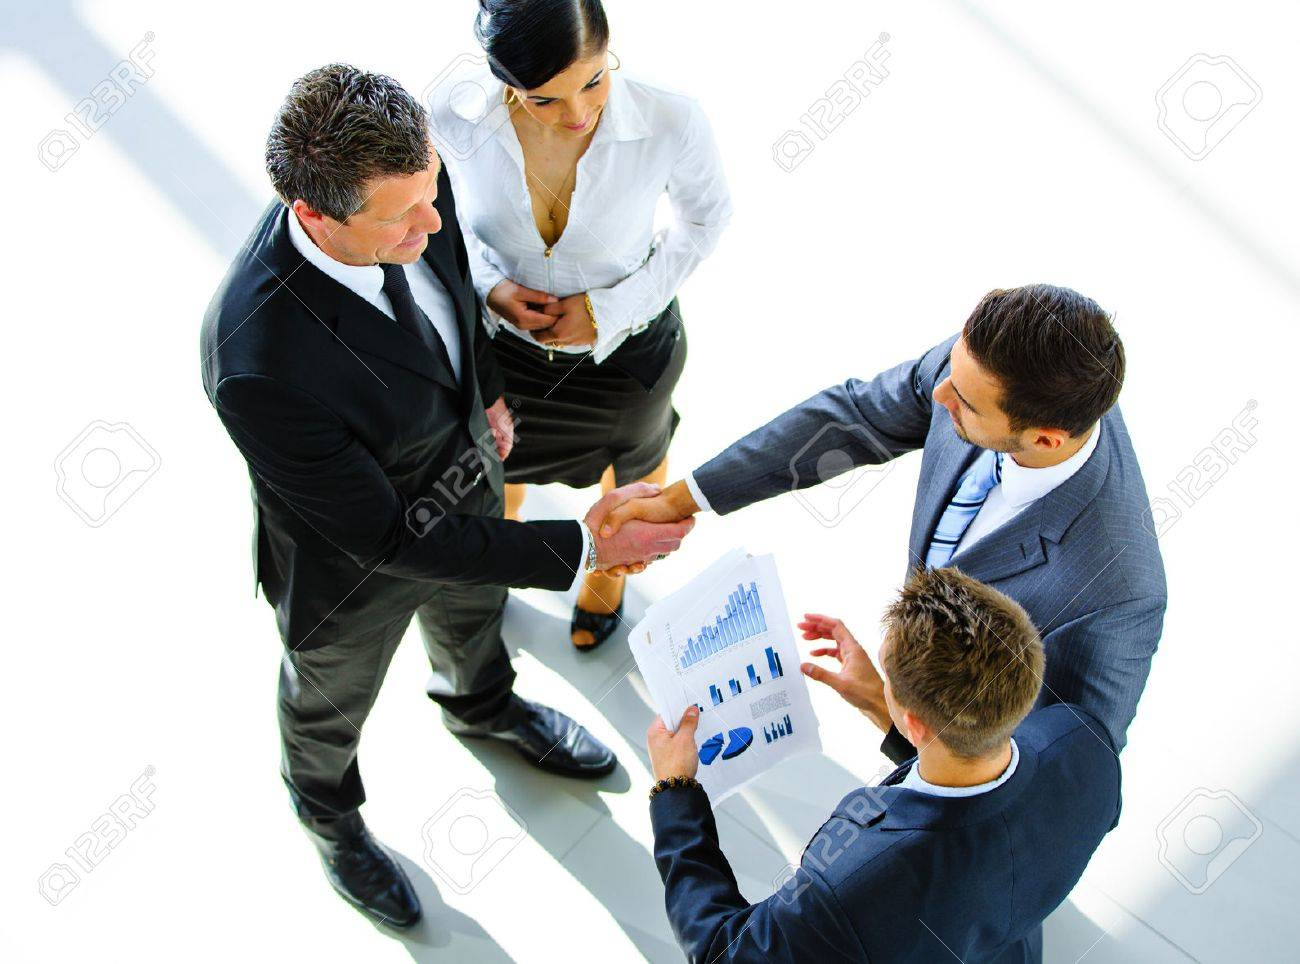 Top view of a two businessman shaking hands - Welcome to business Standard-Bild - 34323977